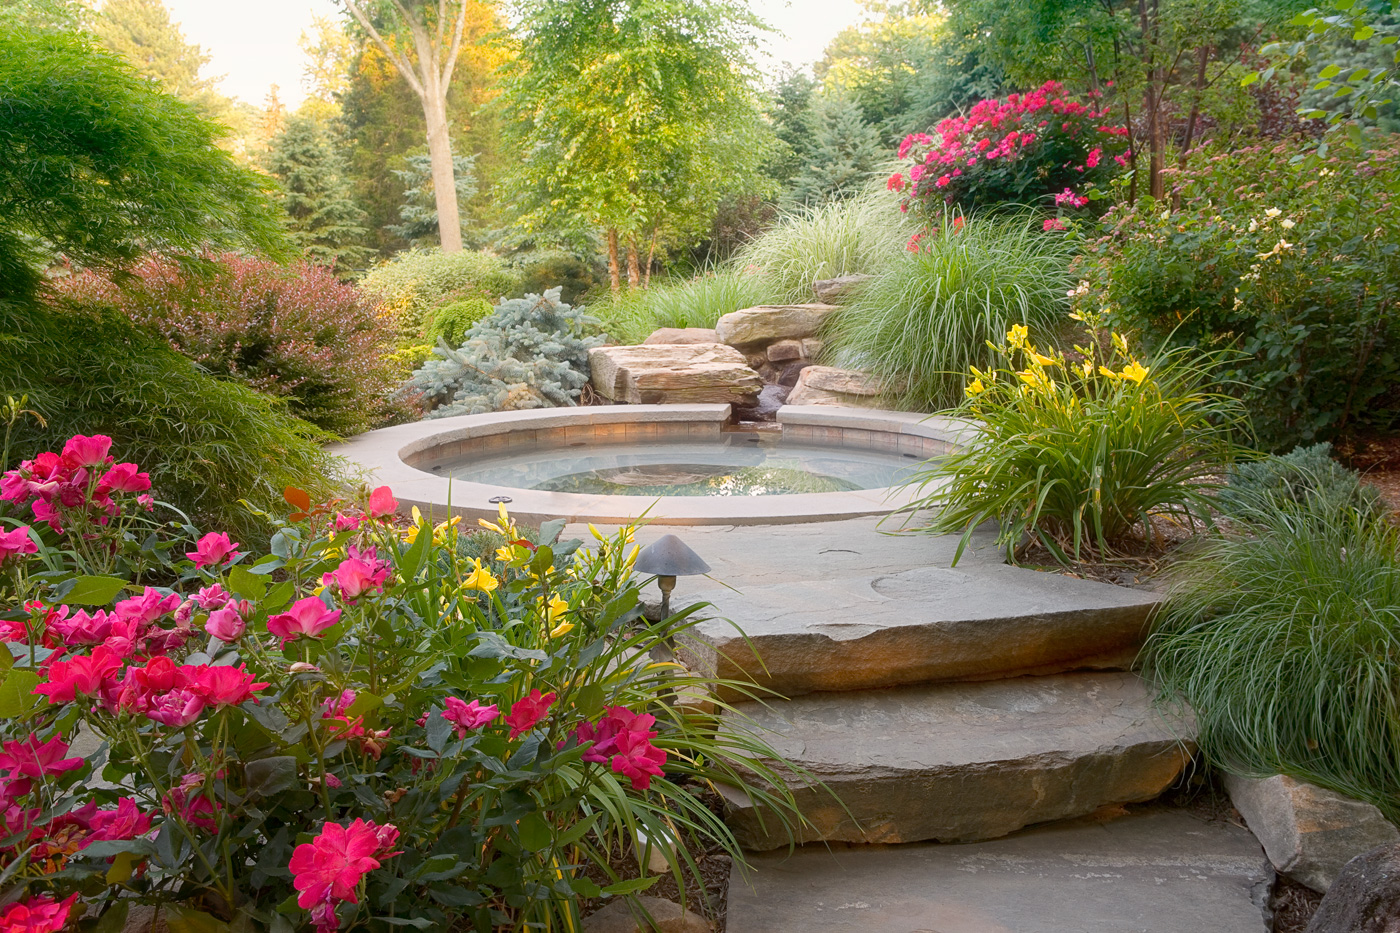 Spas cording landscape design for Landscape garden designs ideas